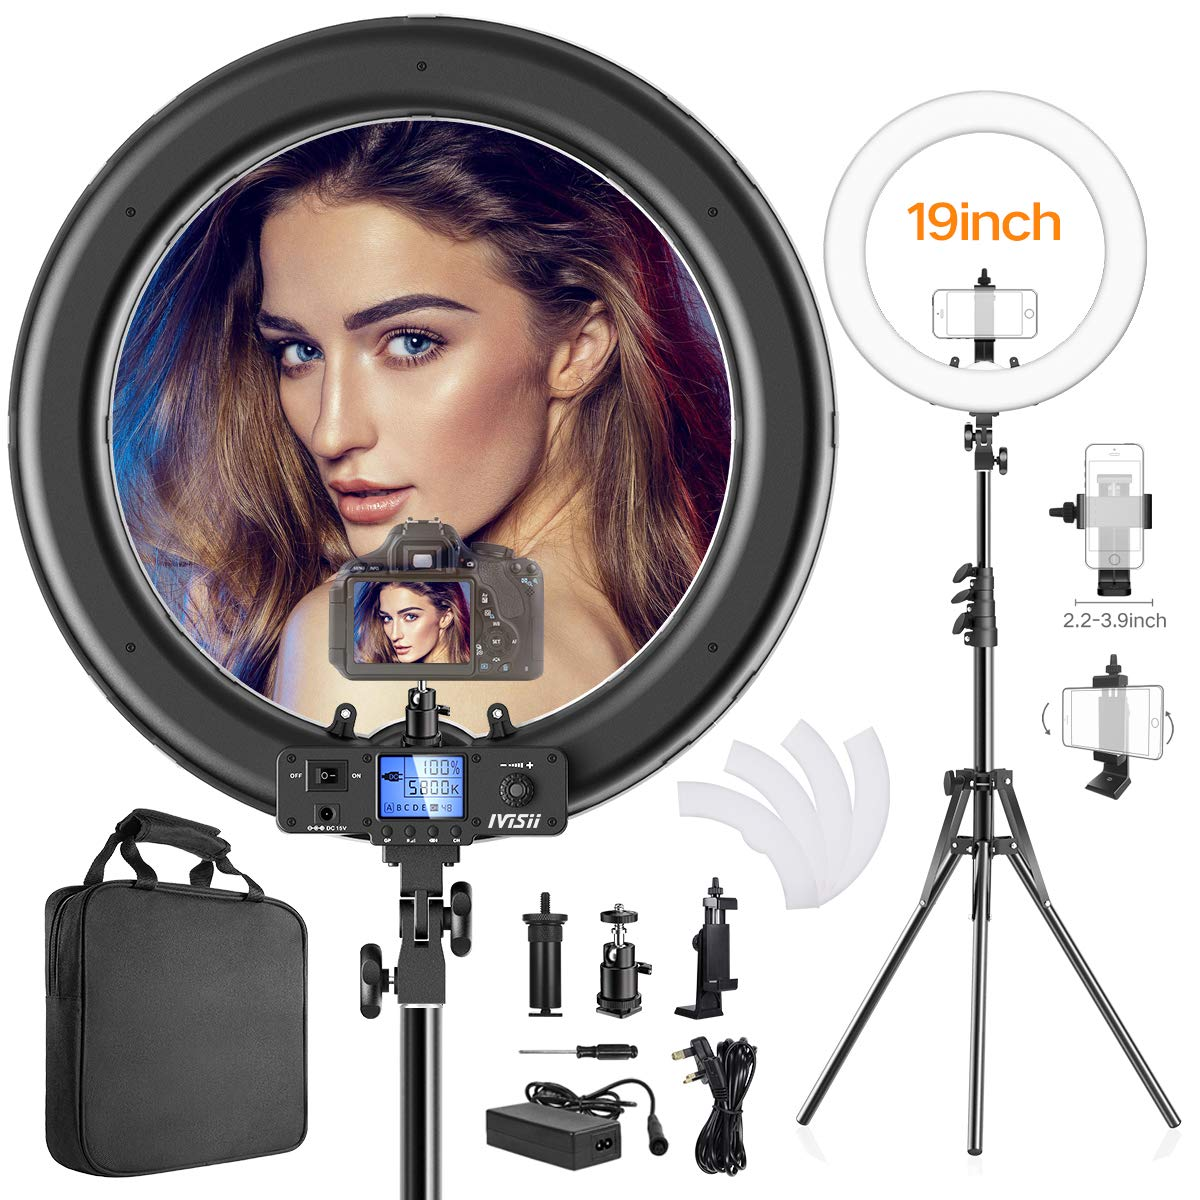 Ring Light,Upgraded Version 19inch with LCD Display Adjustable Color Temperature 3000K-5800K with Stand, YouTube Makeup Dimmable Video LED Light Kit, for Video Shooting, Portrait, Vlog, Selfie